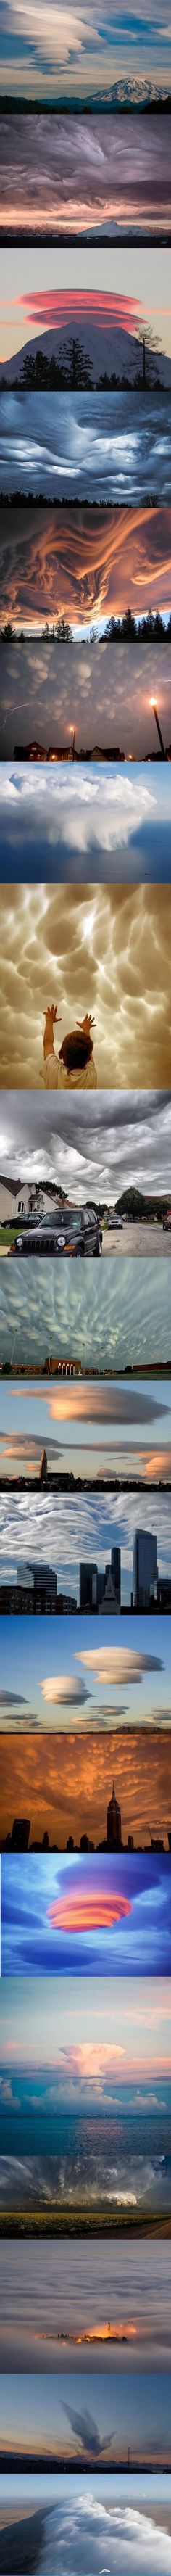 some cloud formations... - #clouds #cloudformations